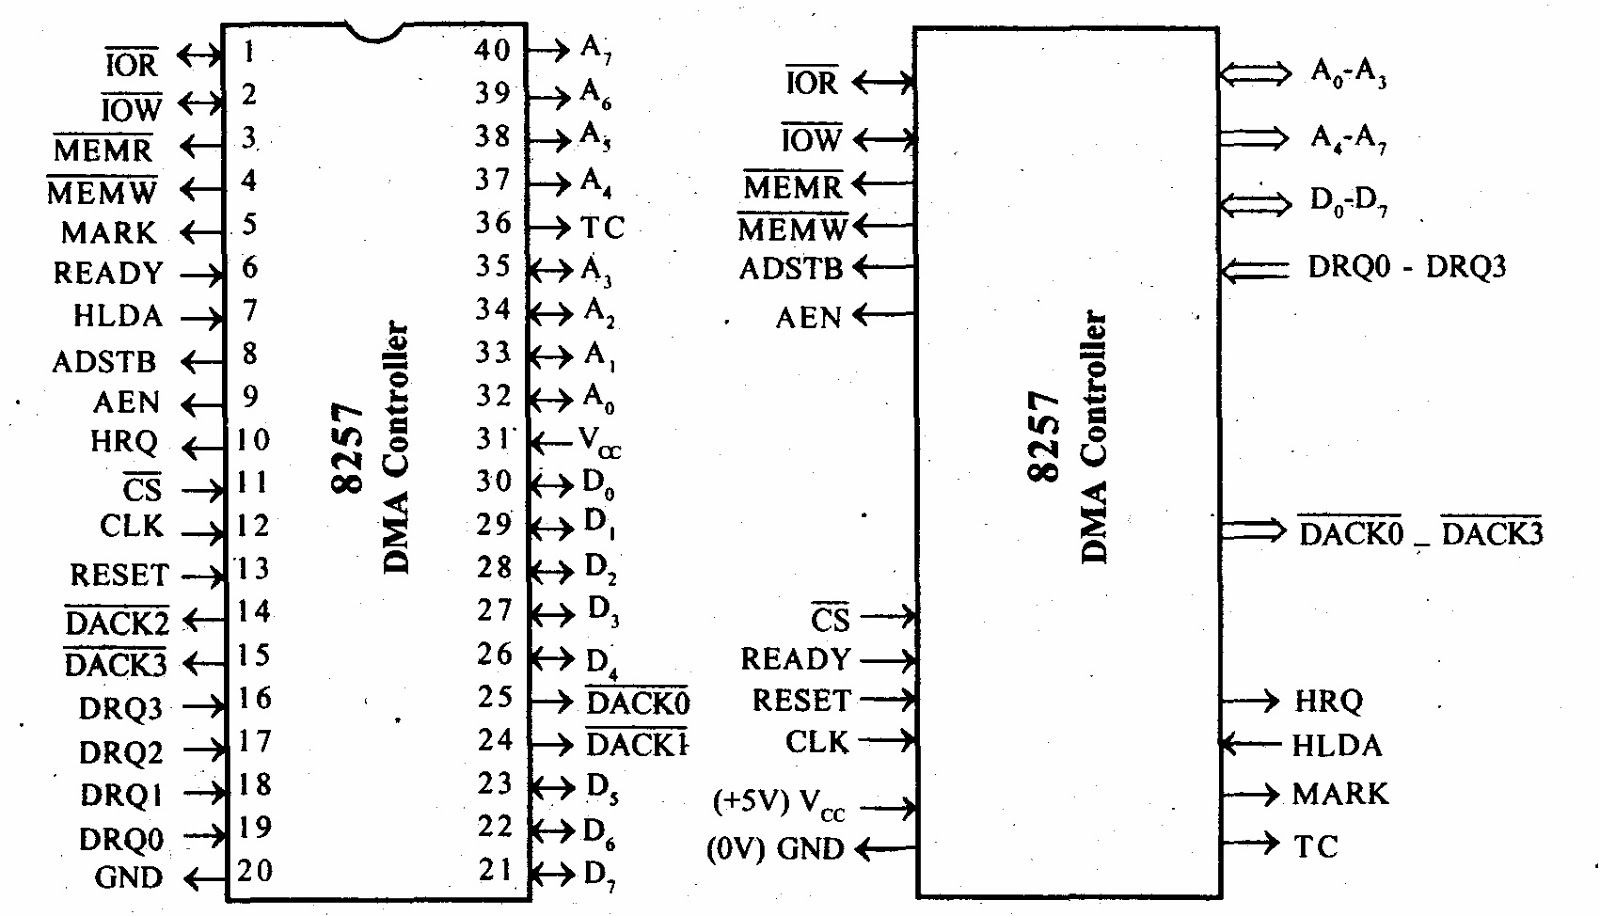 A media to get all datas in electrical science programmable functional block diagram of 8257 ccuart Choice Image